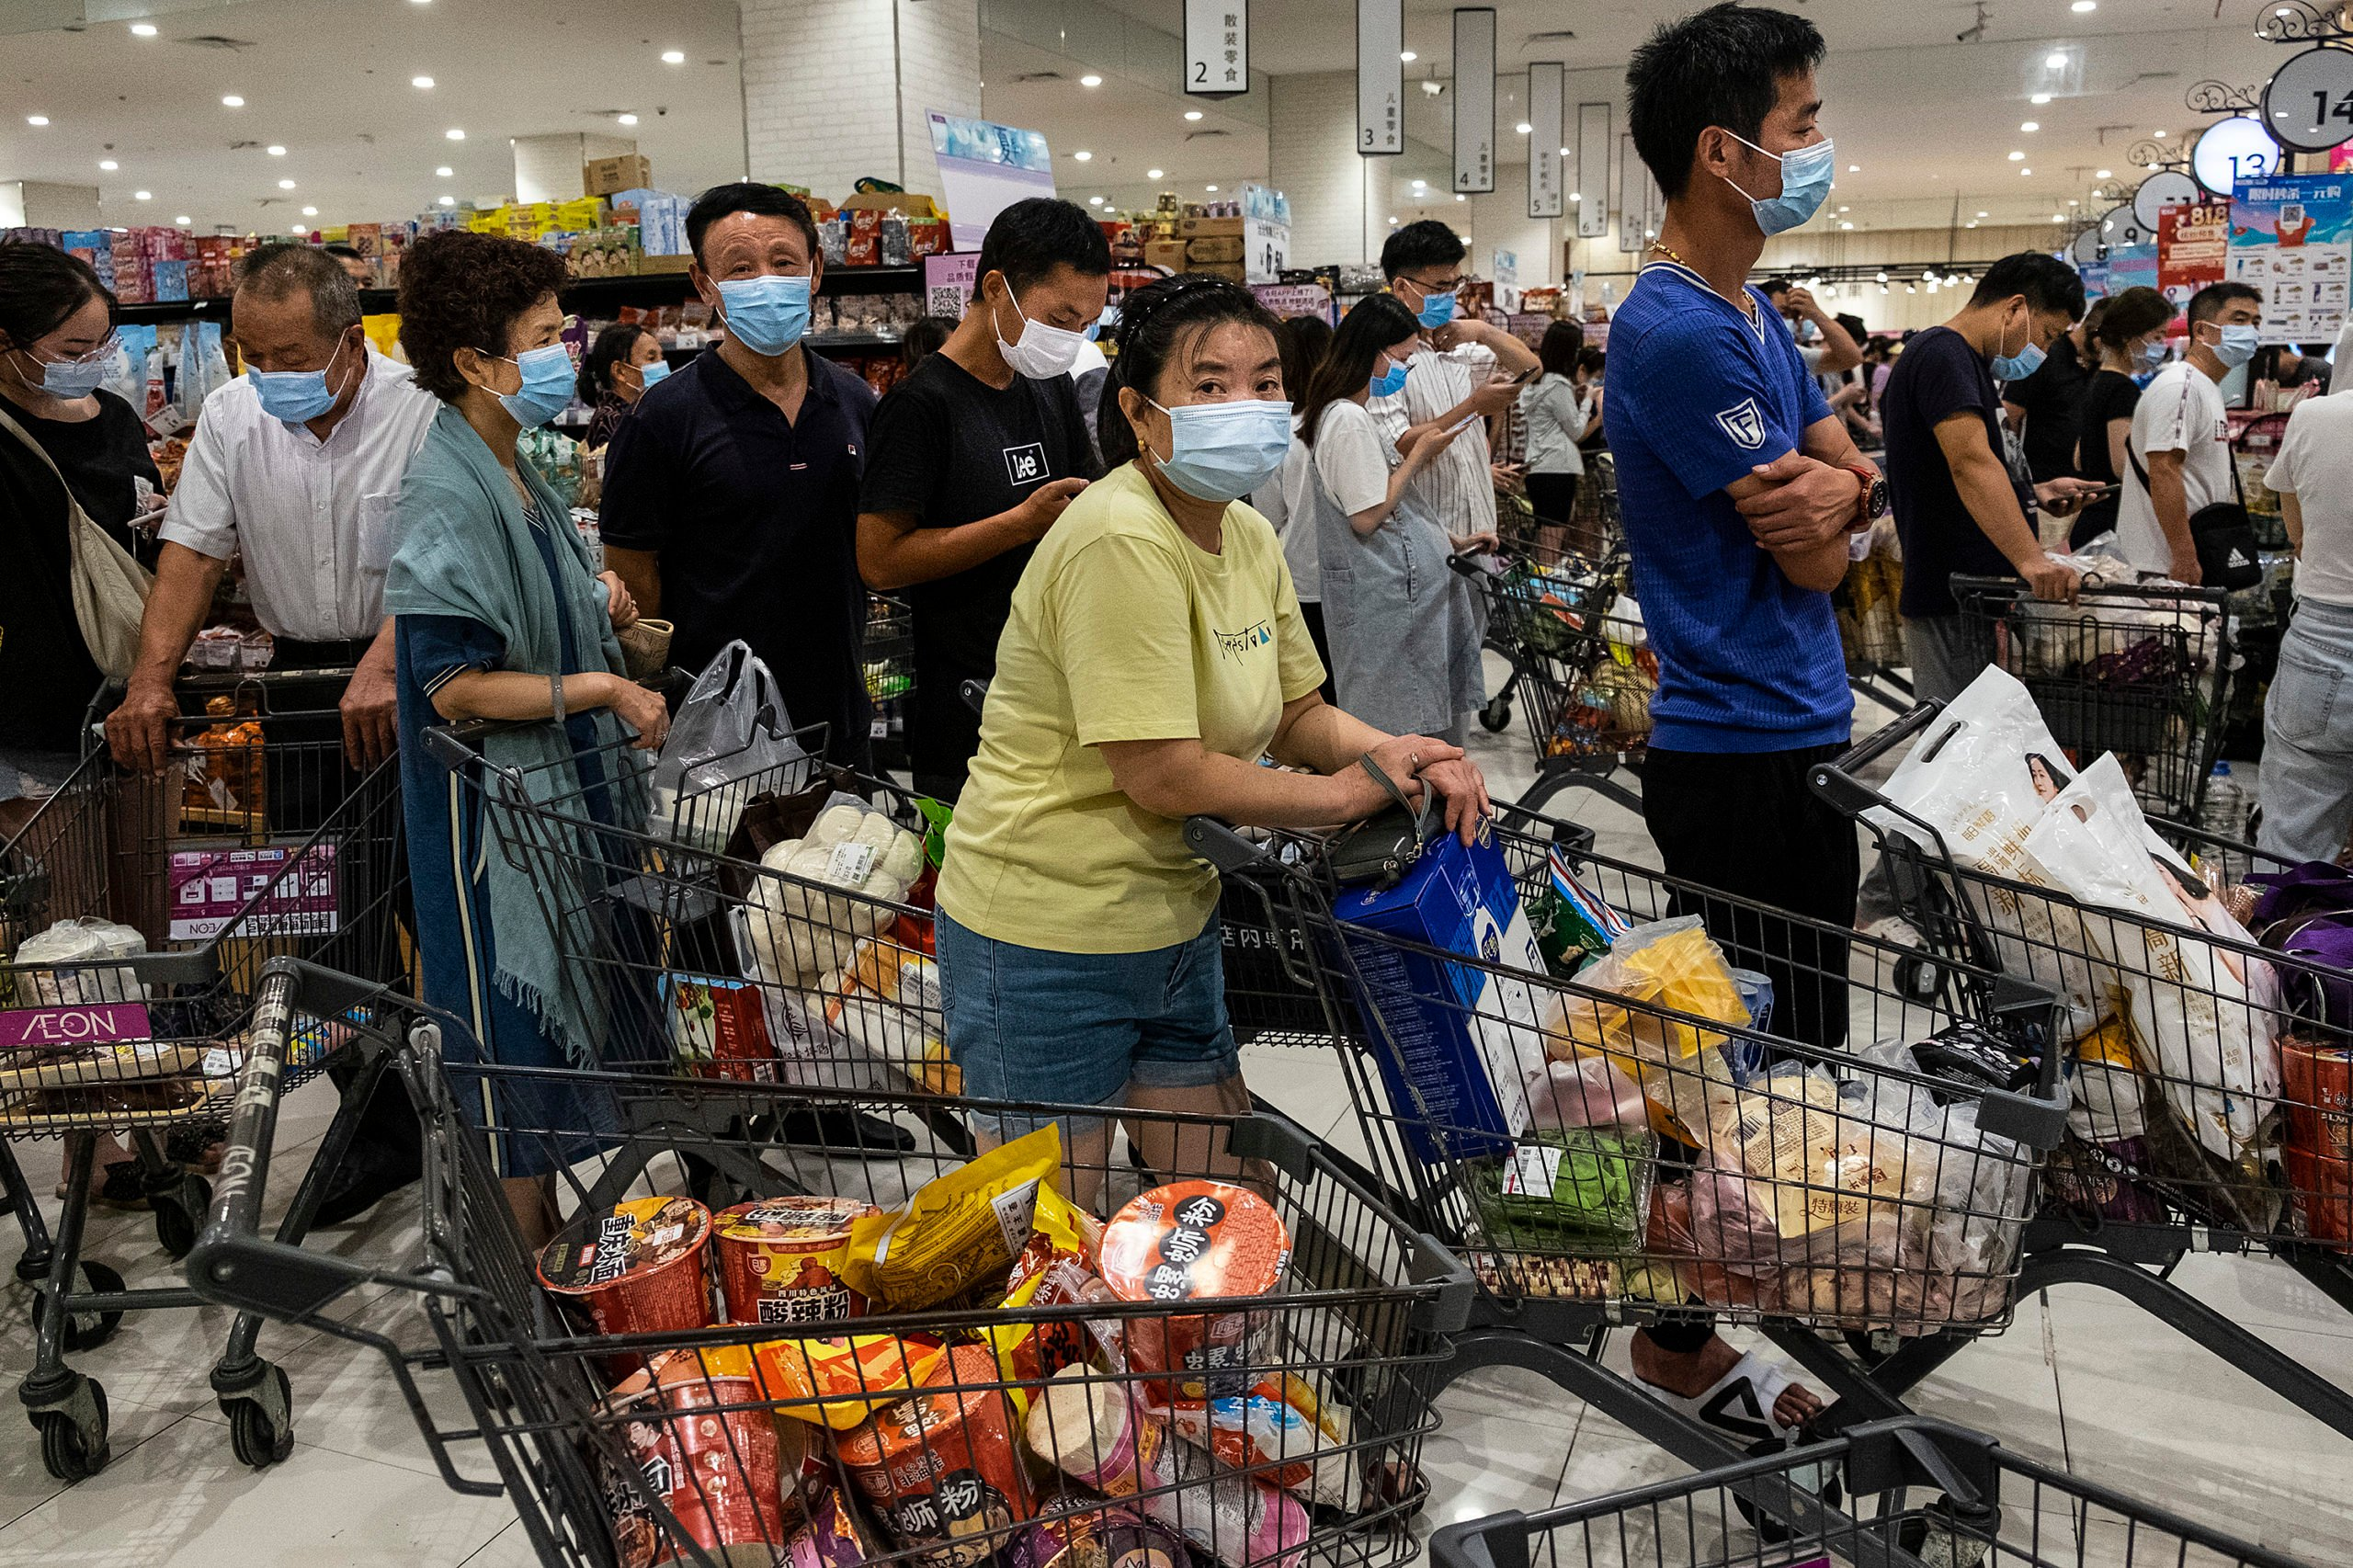 WUHAN, CHINA - AUGUST 2:(CHINA OUT) People wear protective masks as they line up to pay in a supermarket on August 2, 2021 in Wuhan, Hubei Province, China. According to media reports, seven migrant workers returned positive COVID-19 nucleic acid tests. Wuhan has not reported locally transmitted cases for over a year. (Photo by Getty Images)